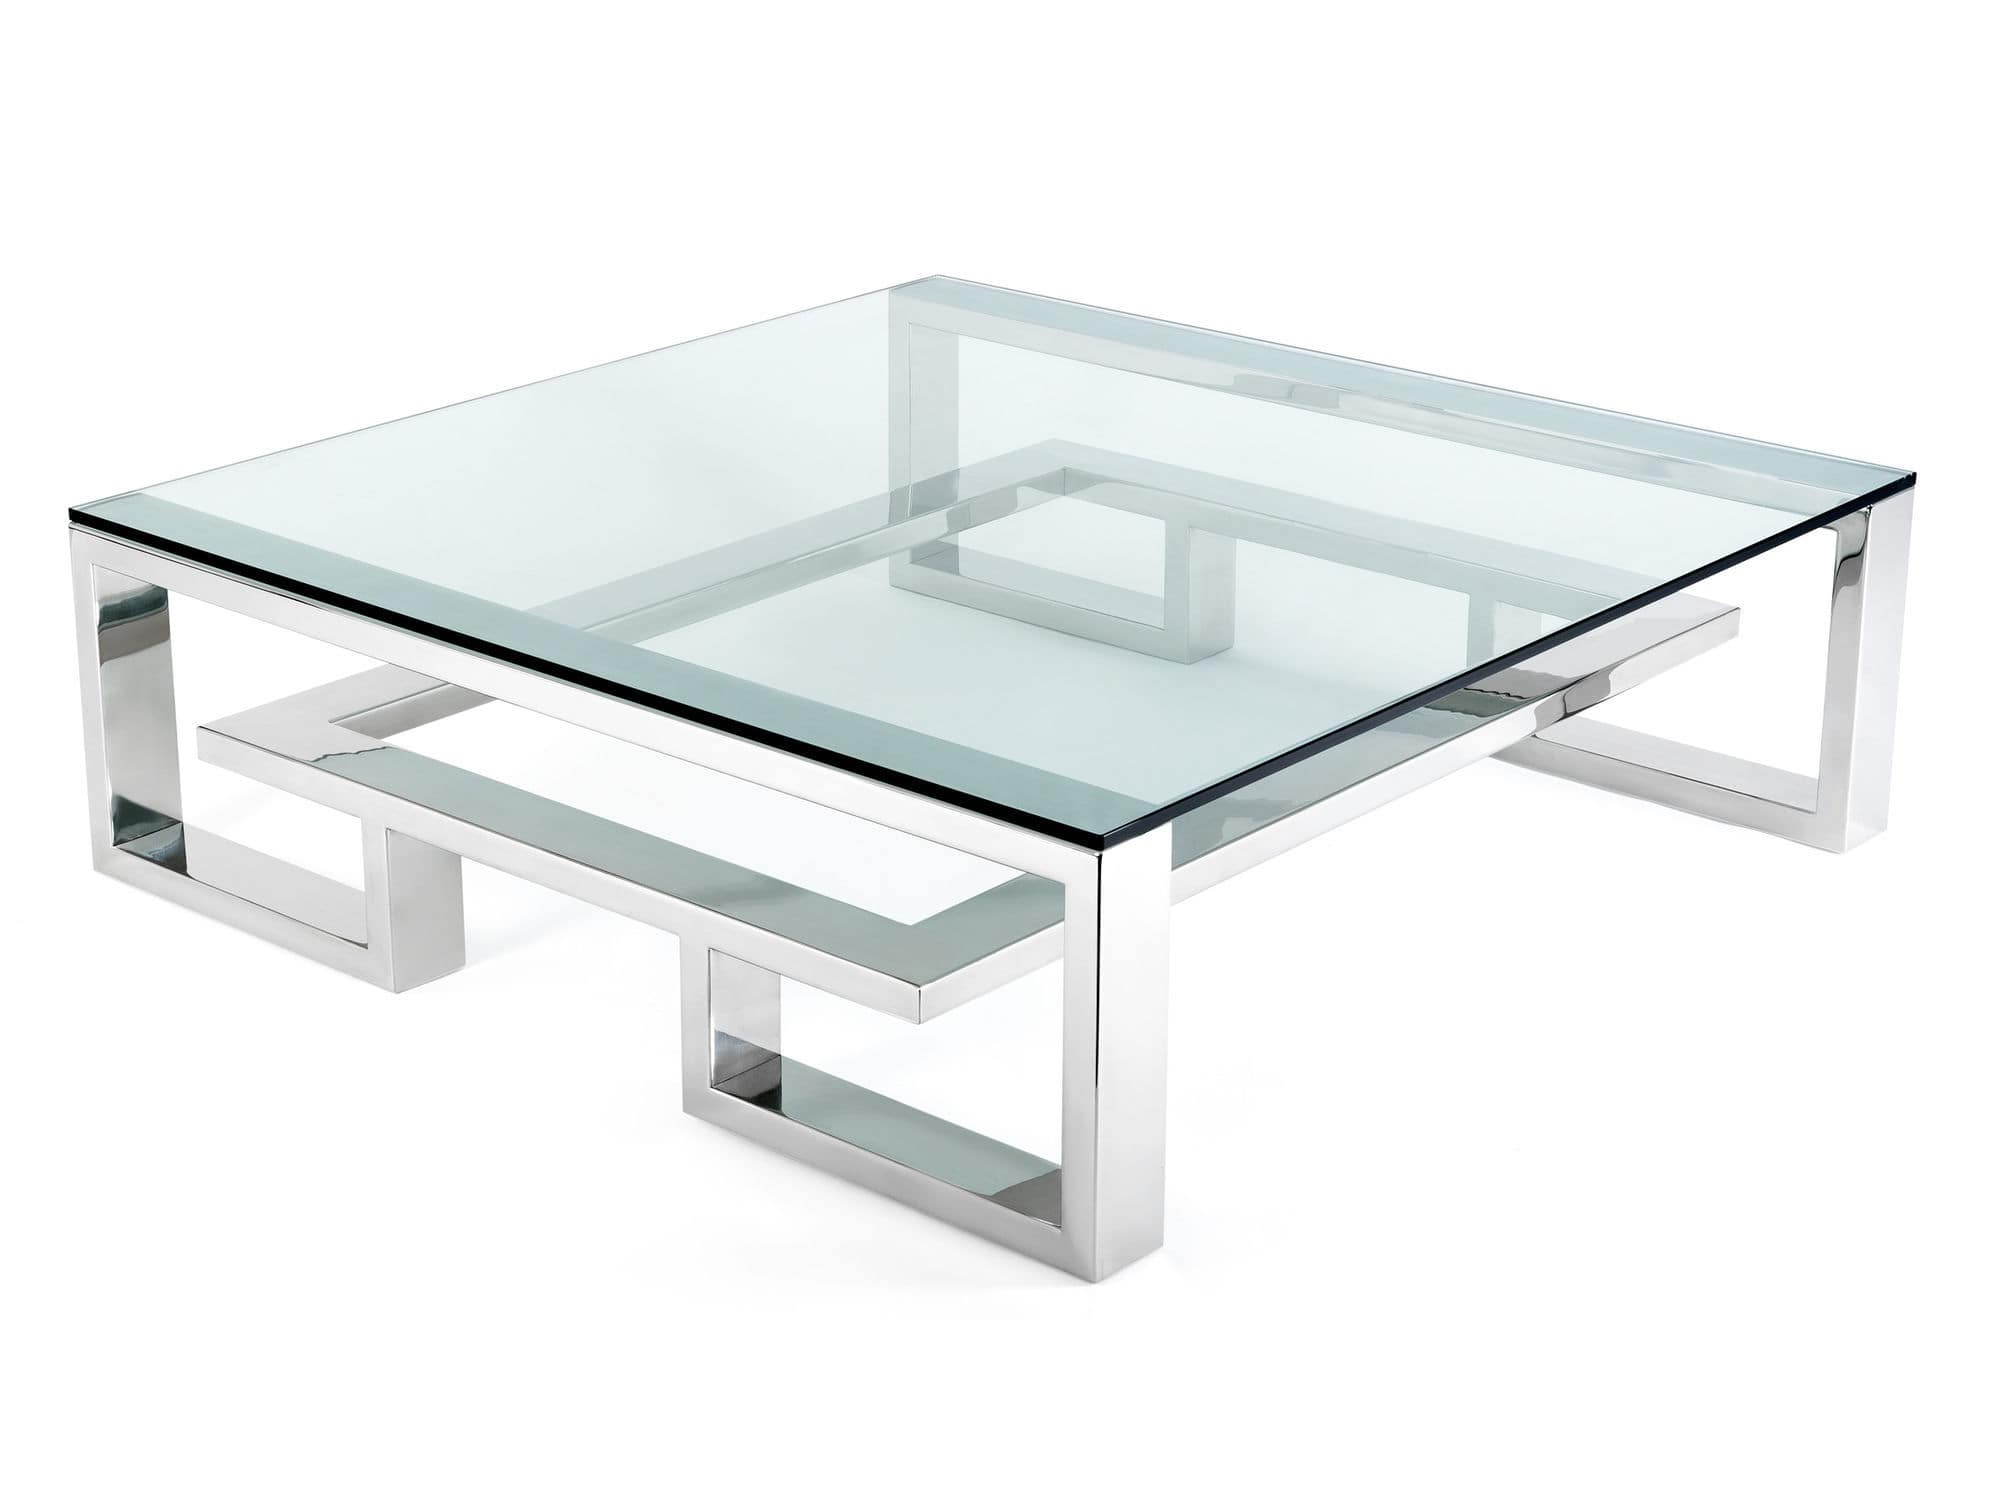 Table basse en verre carr e id es de d coration - Table carree en verre ...